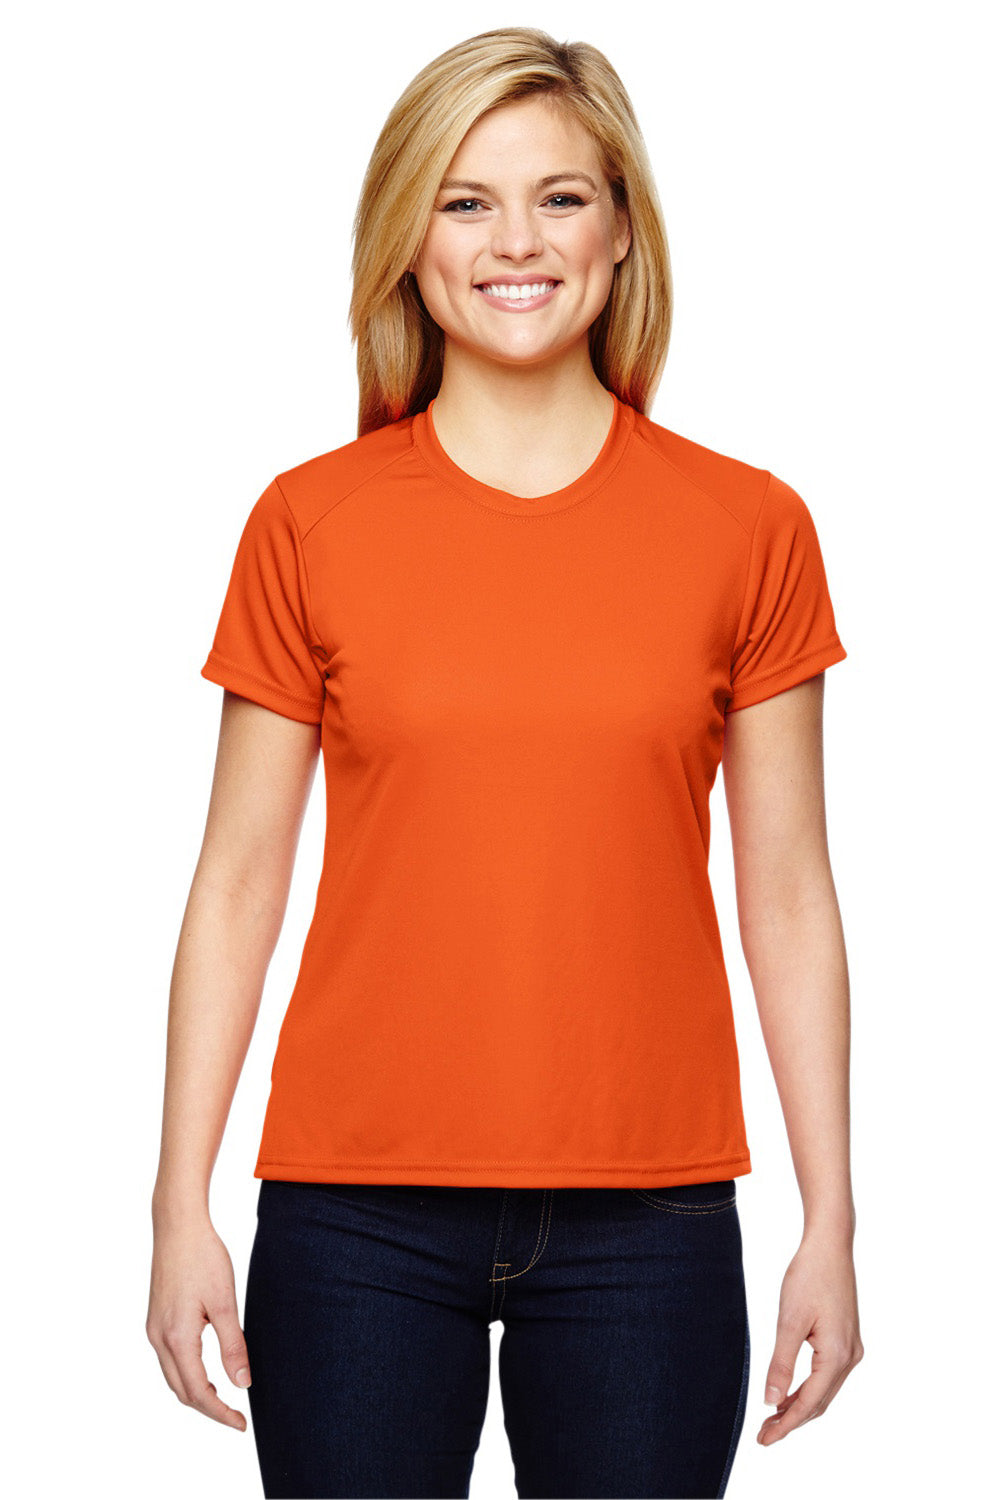 A4 NW3201 Womens Cooling Performance Moisture Wicking Short Sleeve Crewneck T-Shirt Orange Front